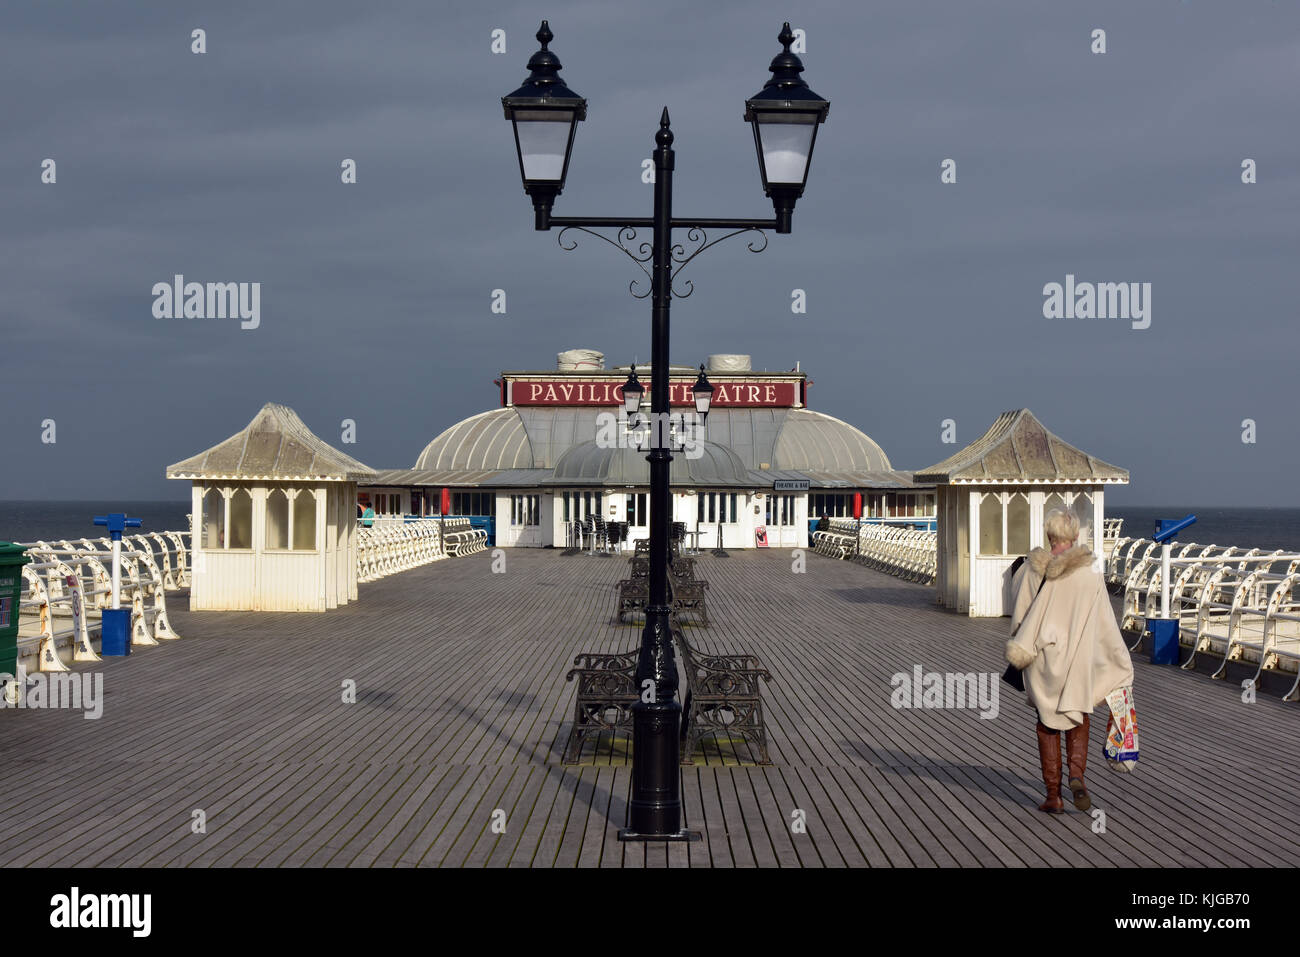 Cromer pier in Norfolk. Edwardian or Victorian seaside structures with lampposts in the foreground. Typically British - Stock Image